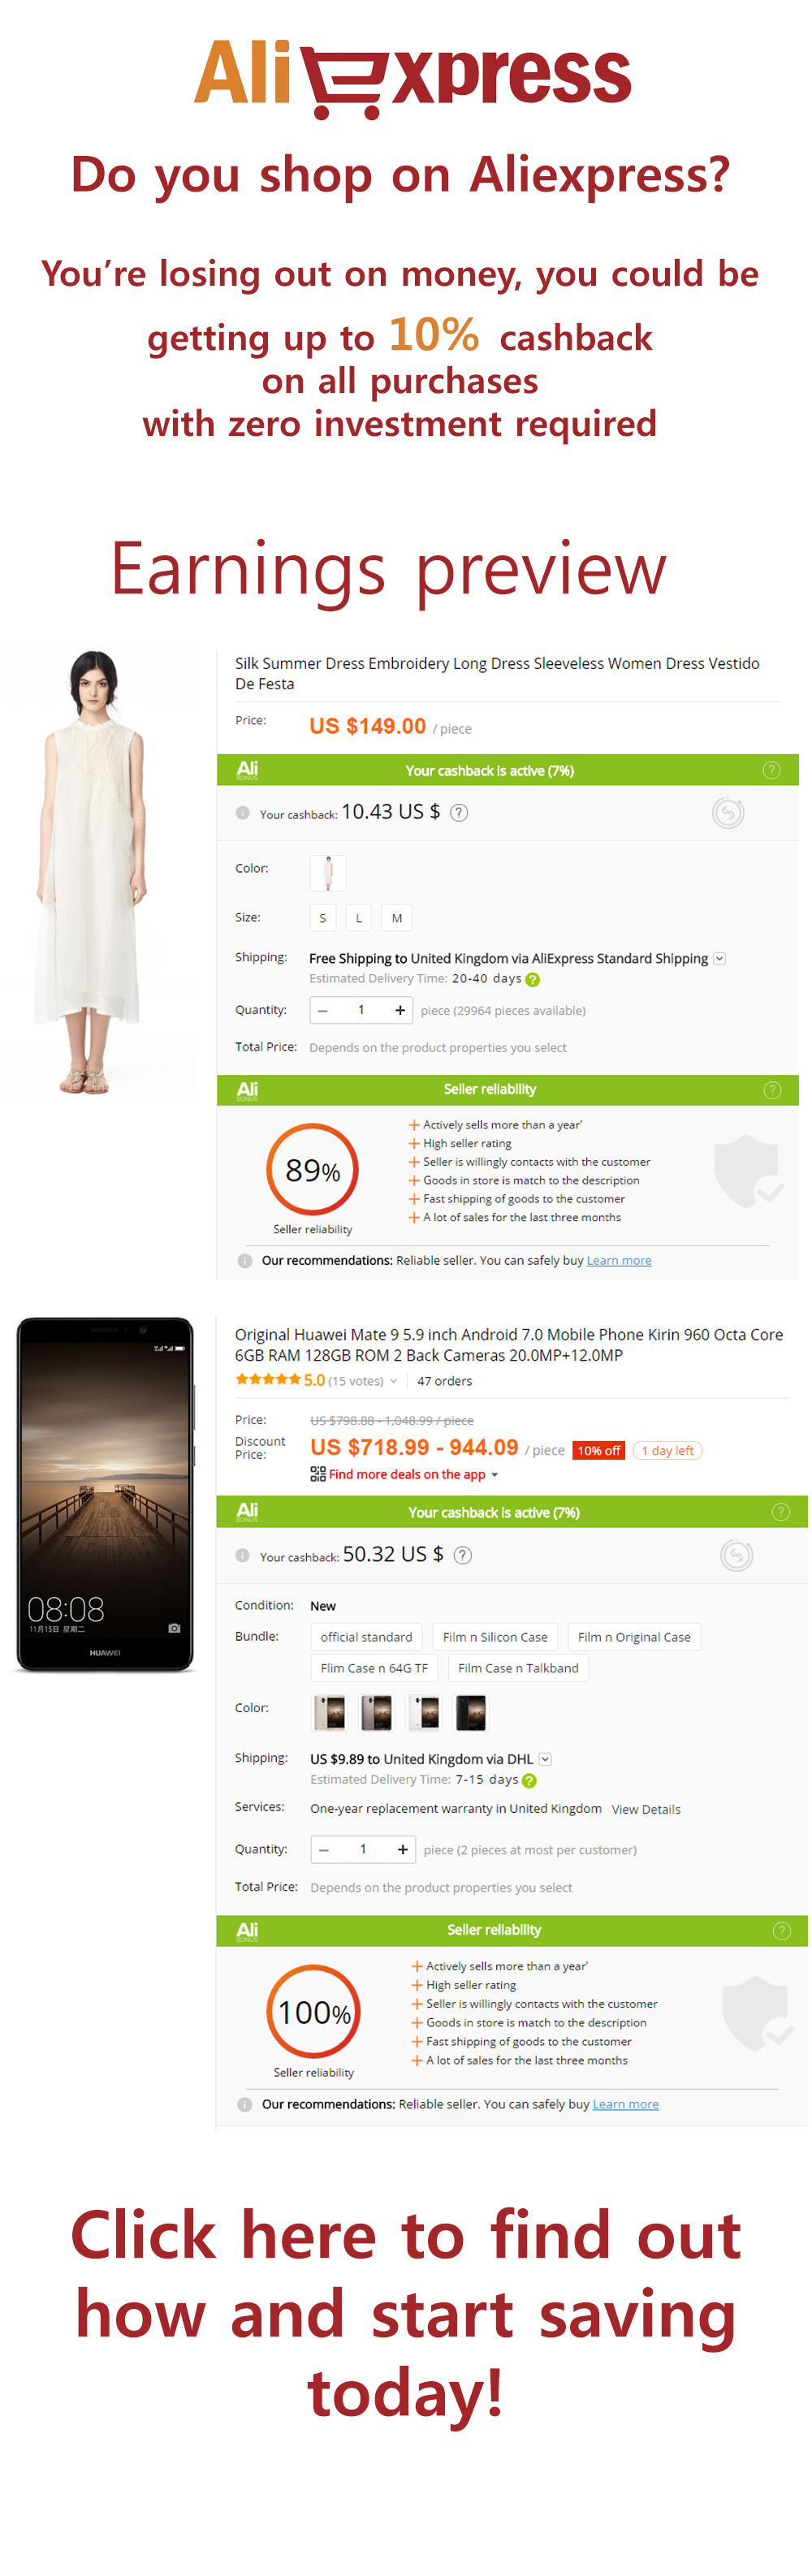 Do you shop on aliexpress? Save money by getting cash back on all Aliexpress purchases with zero investment required